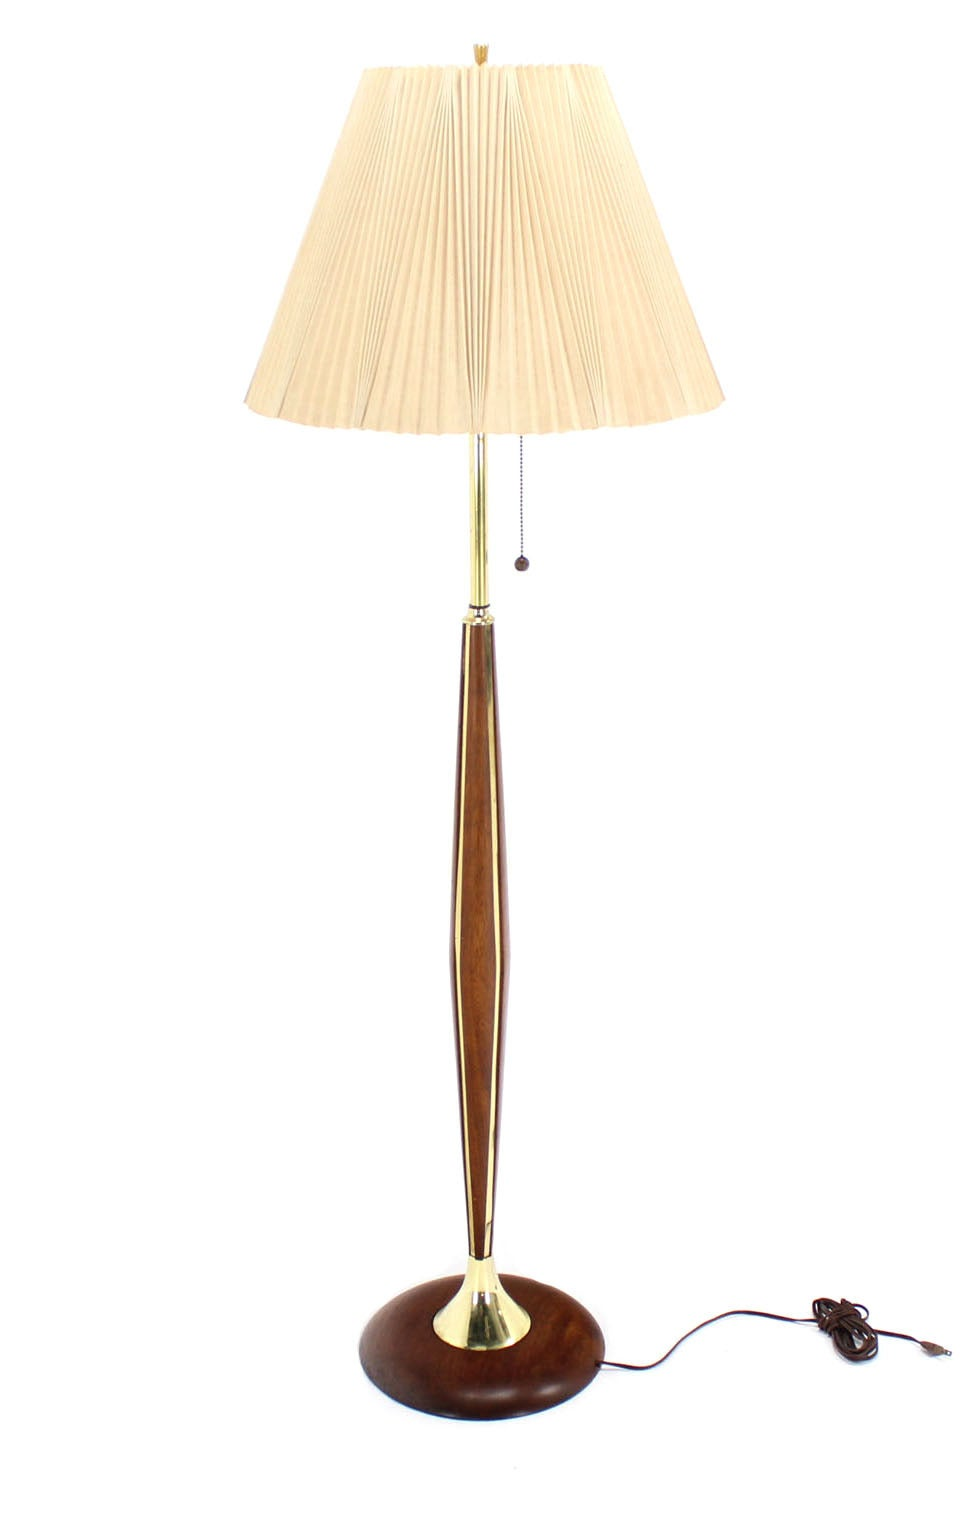 Walnut And Brass Mid Century Modern Floor Lamp For Sale At